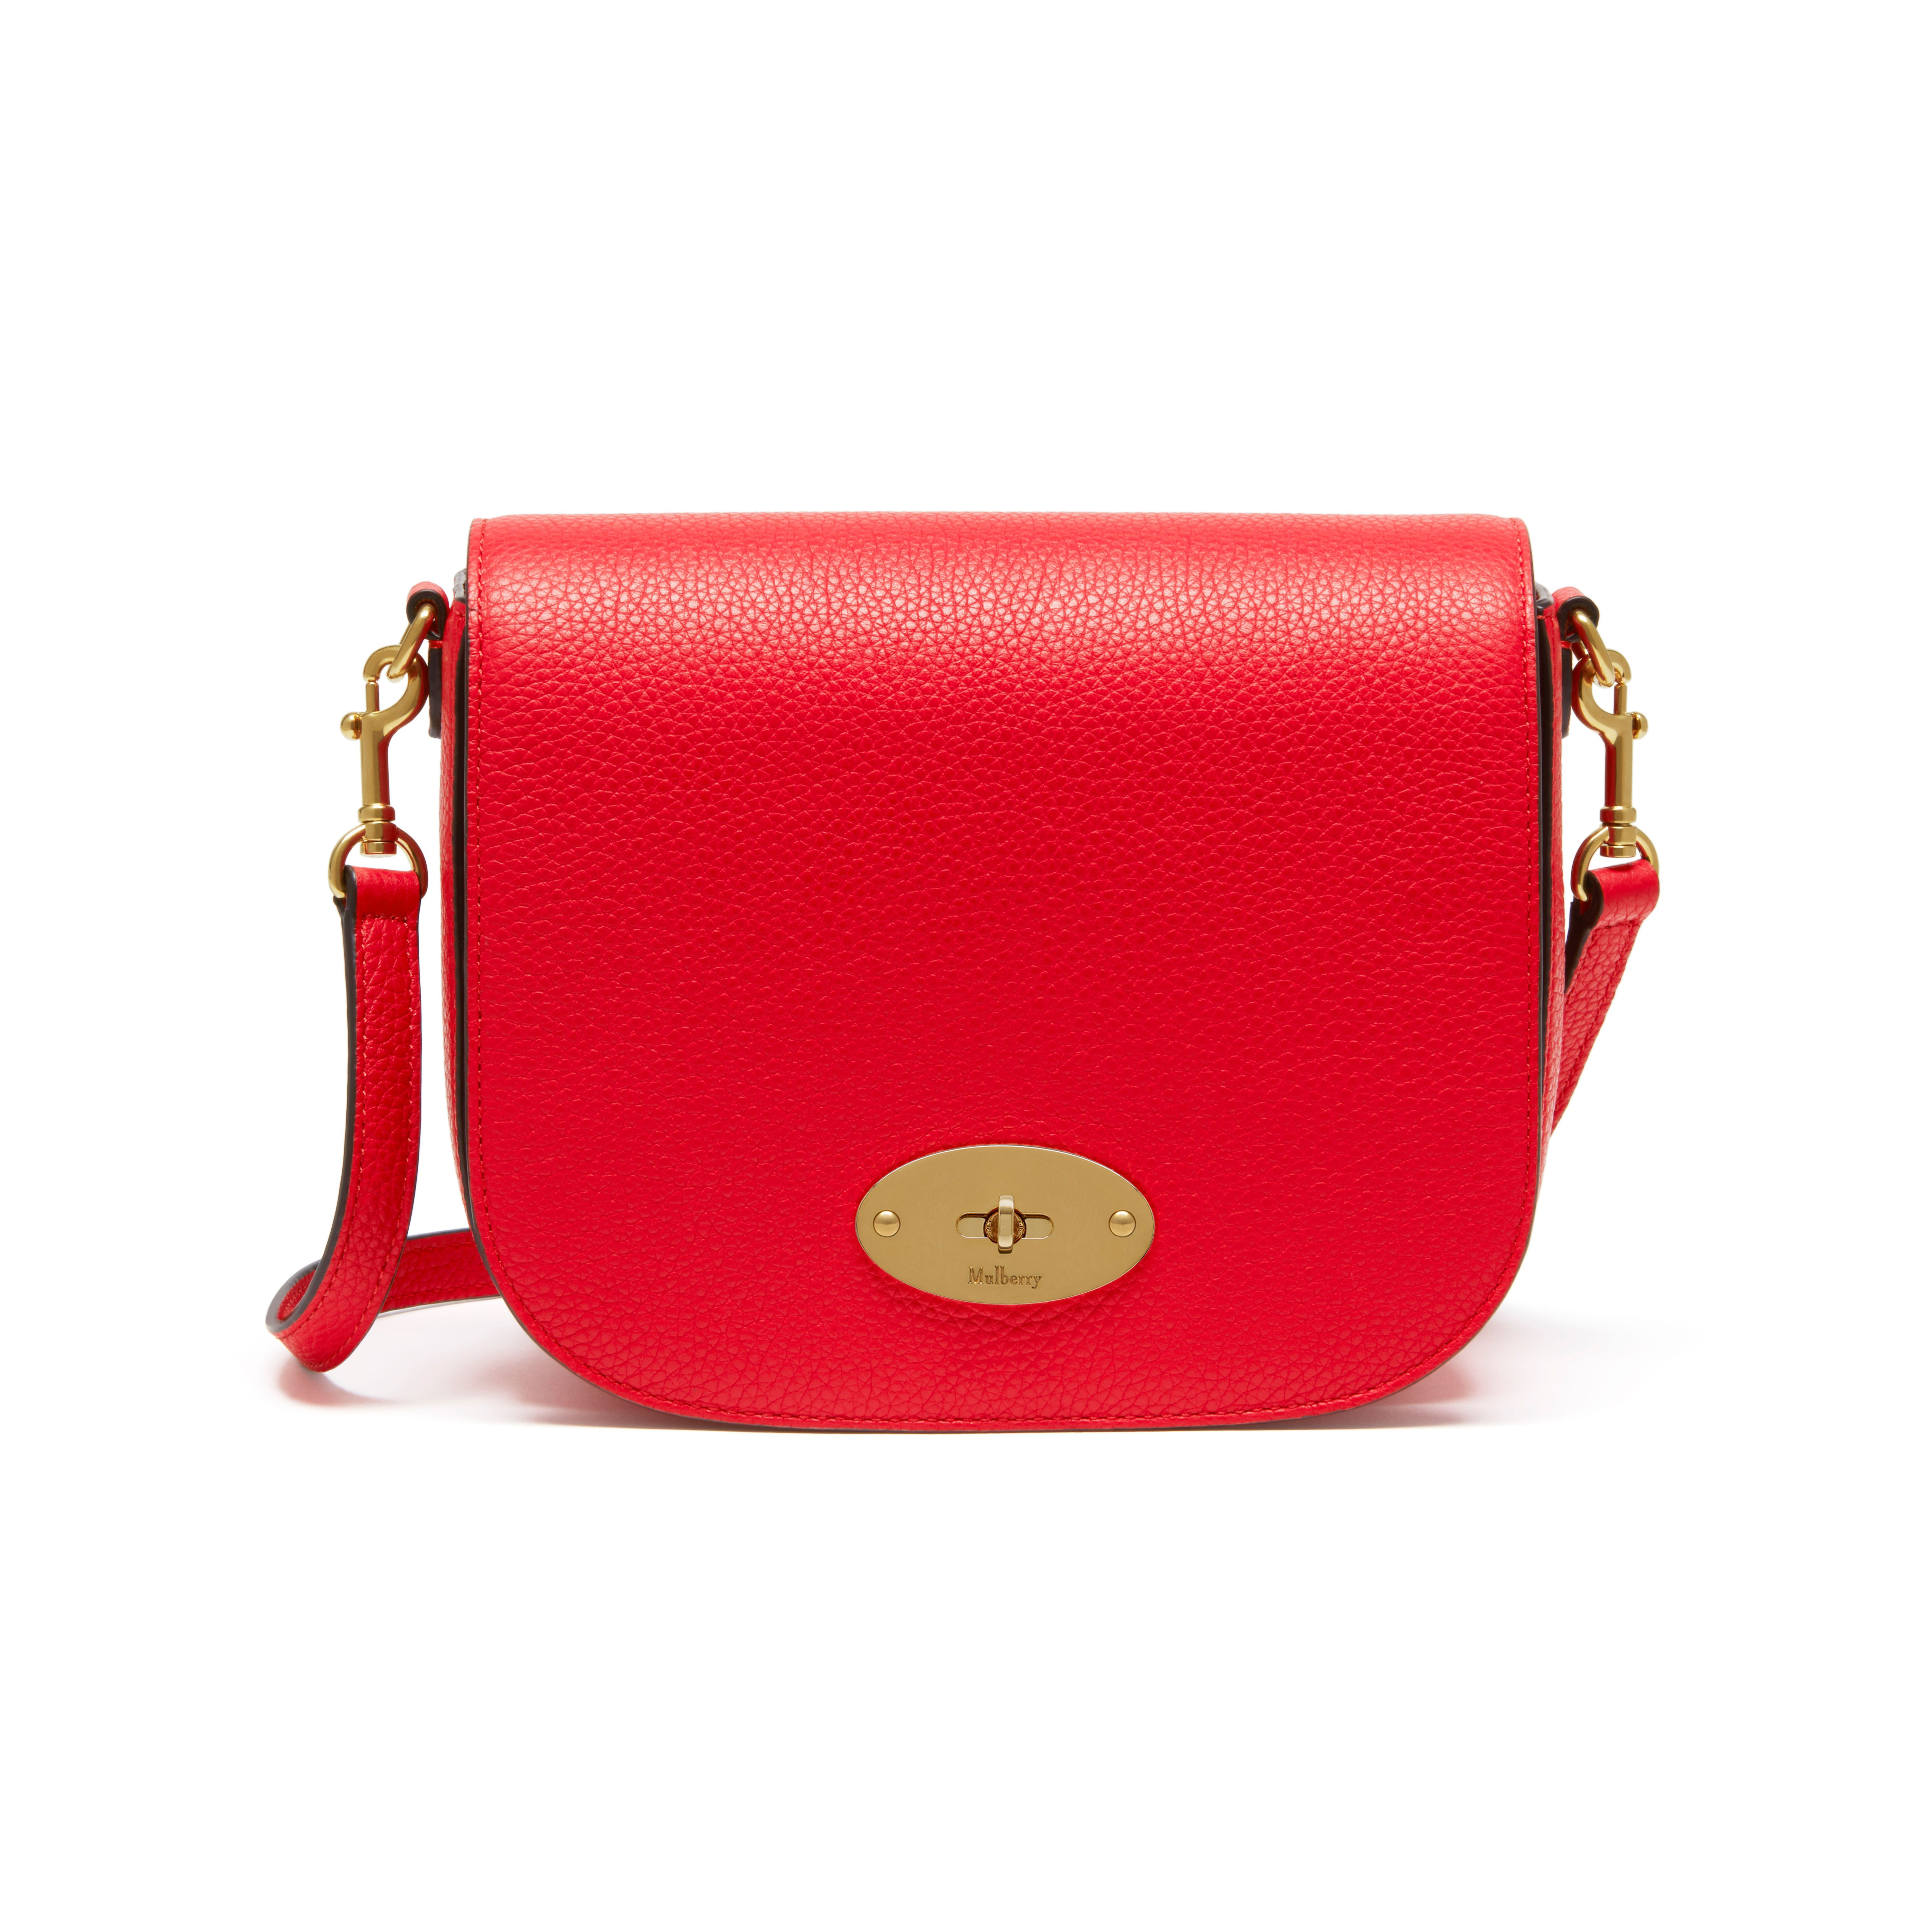 0a05f6a739ce Shop the Small Darley Satchel in Small Classic Grain in Fiery Red Leather  at Mulberry.com. The Small Darley Satchel has retro mini-bag appeal